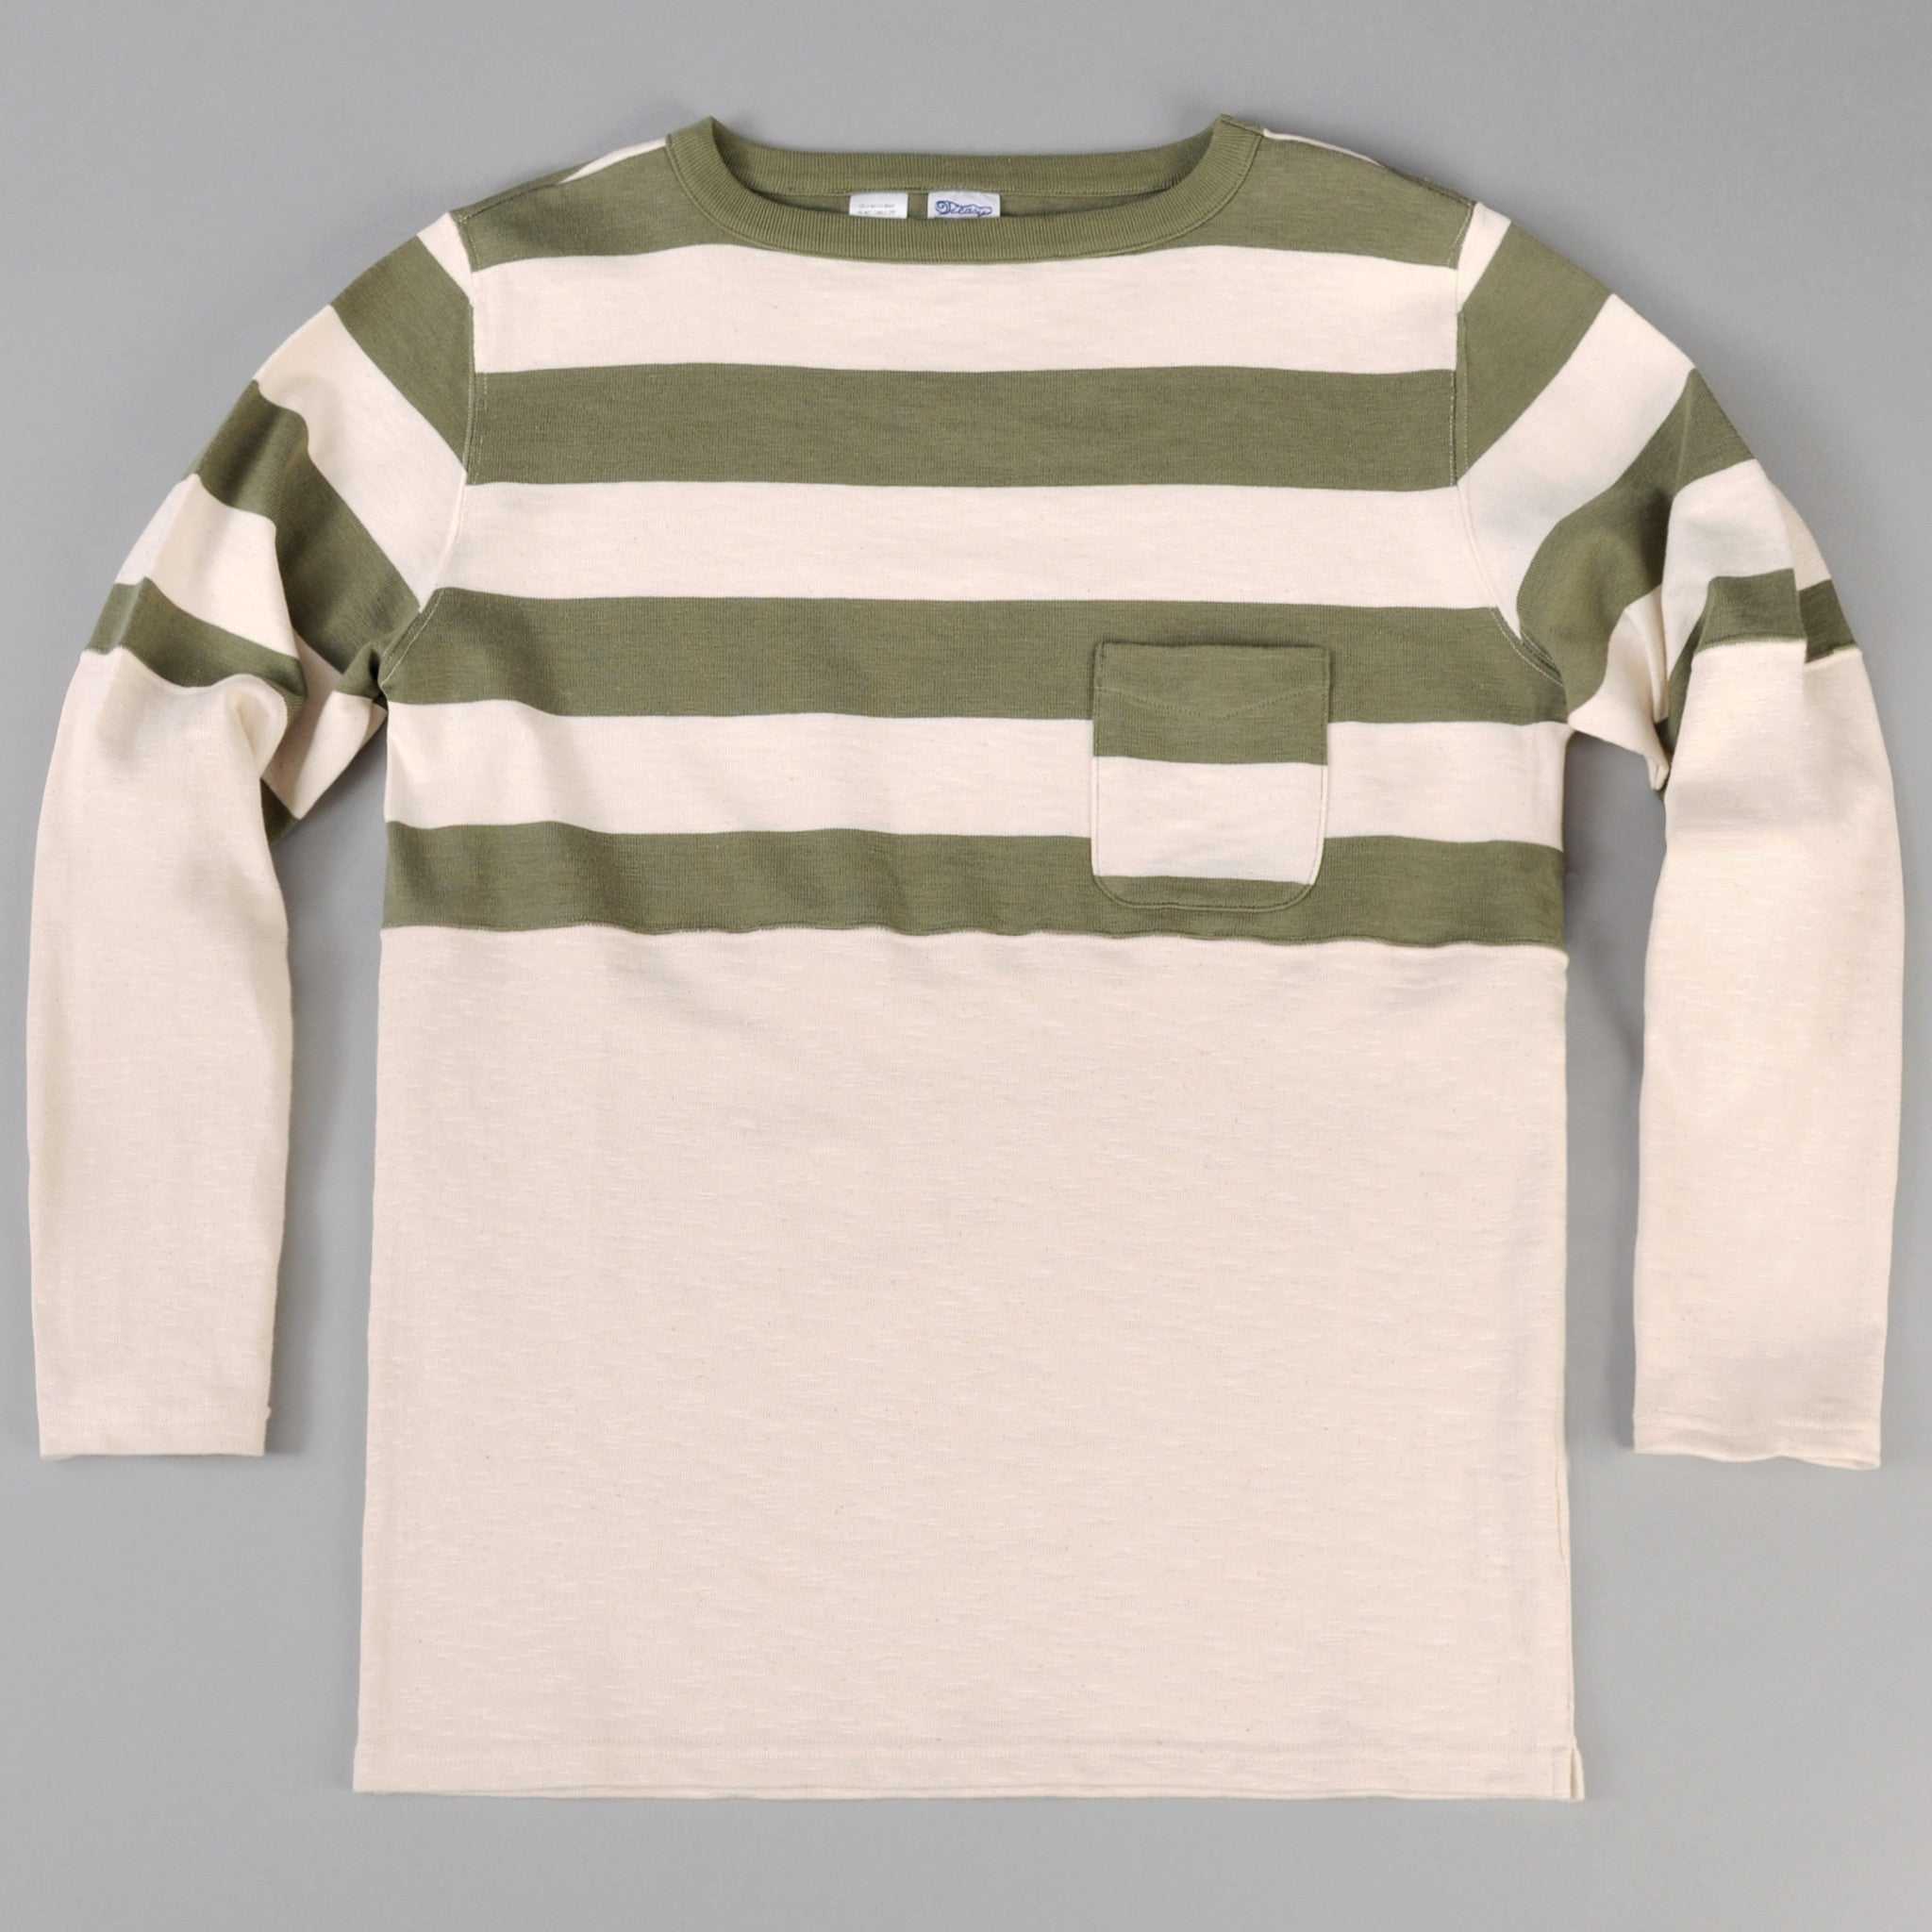 The Hill-Side - Half Stripe Basque Shirt, Olive (TH-S x Teasy) - TS3-02 - image 1